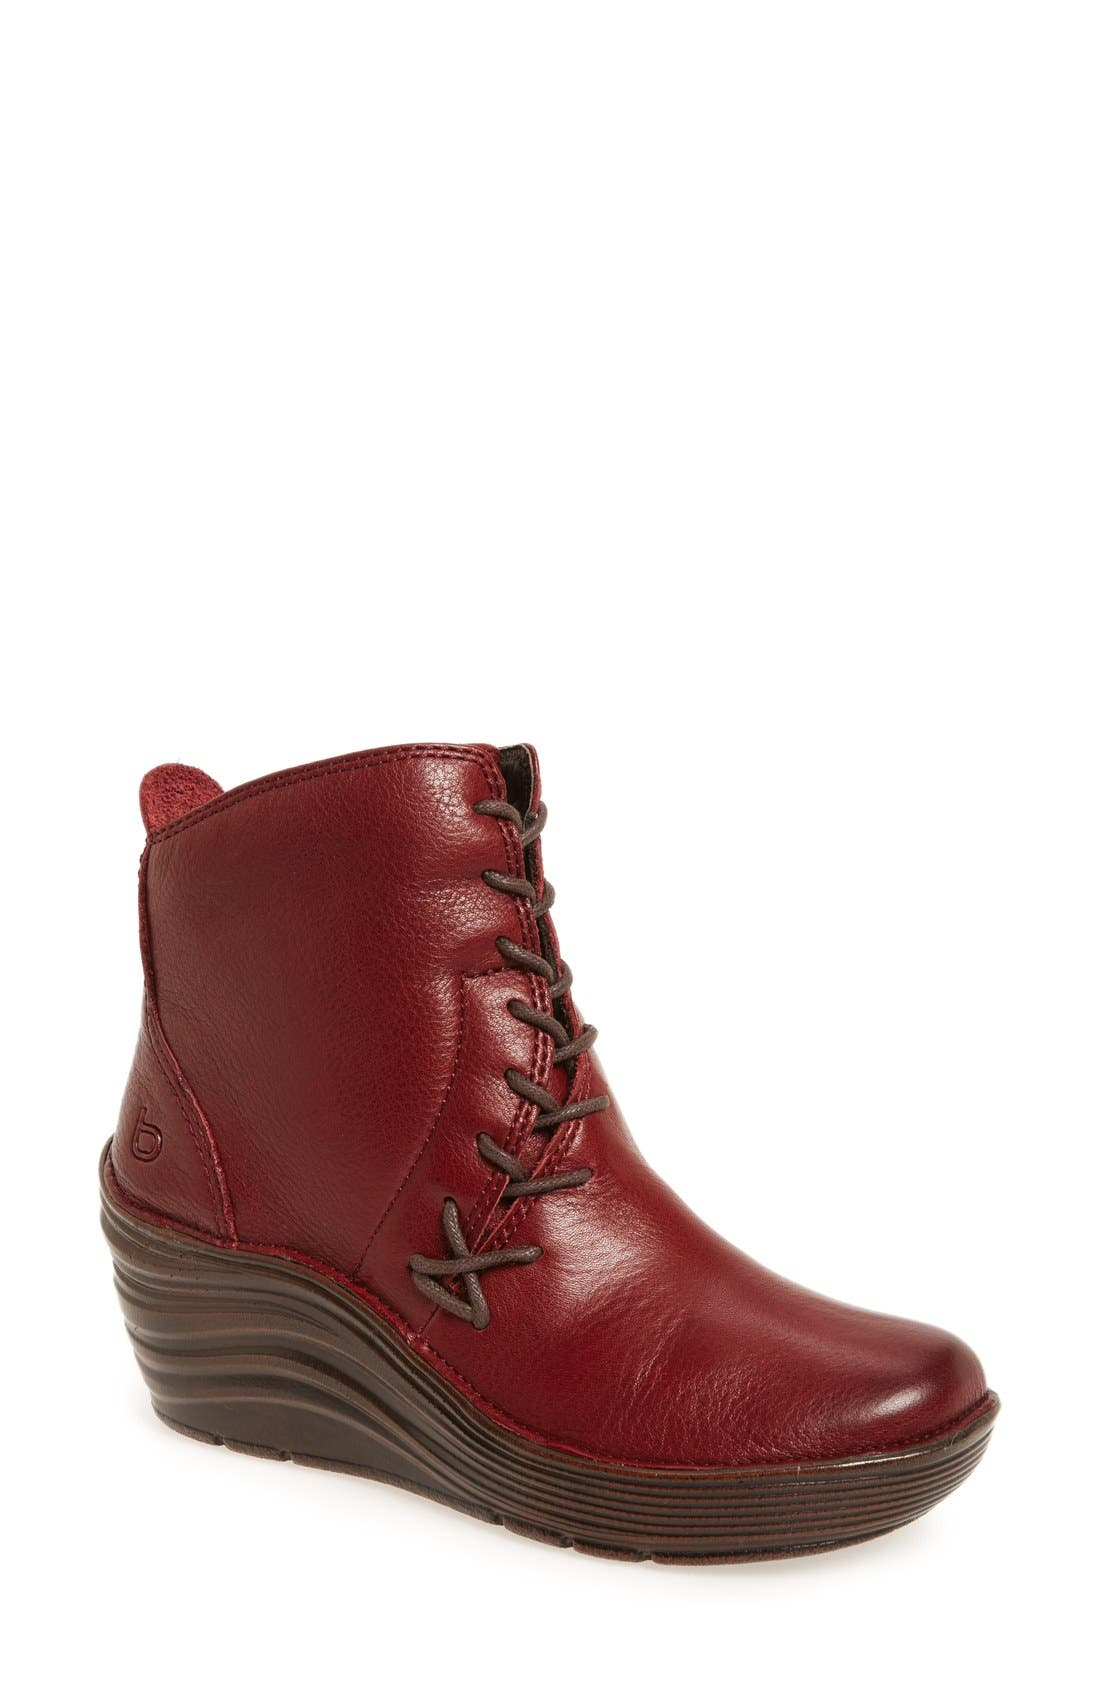 'Corset' Bootie,                         Main,                         color, Russet Red Nubuck Leather